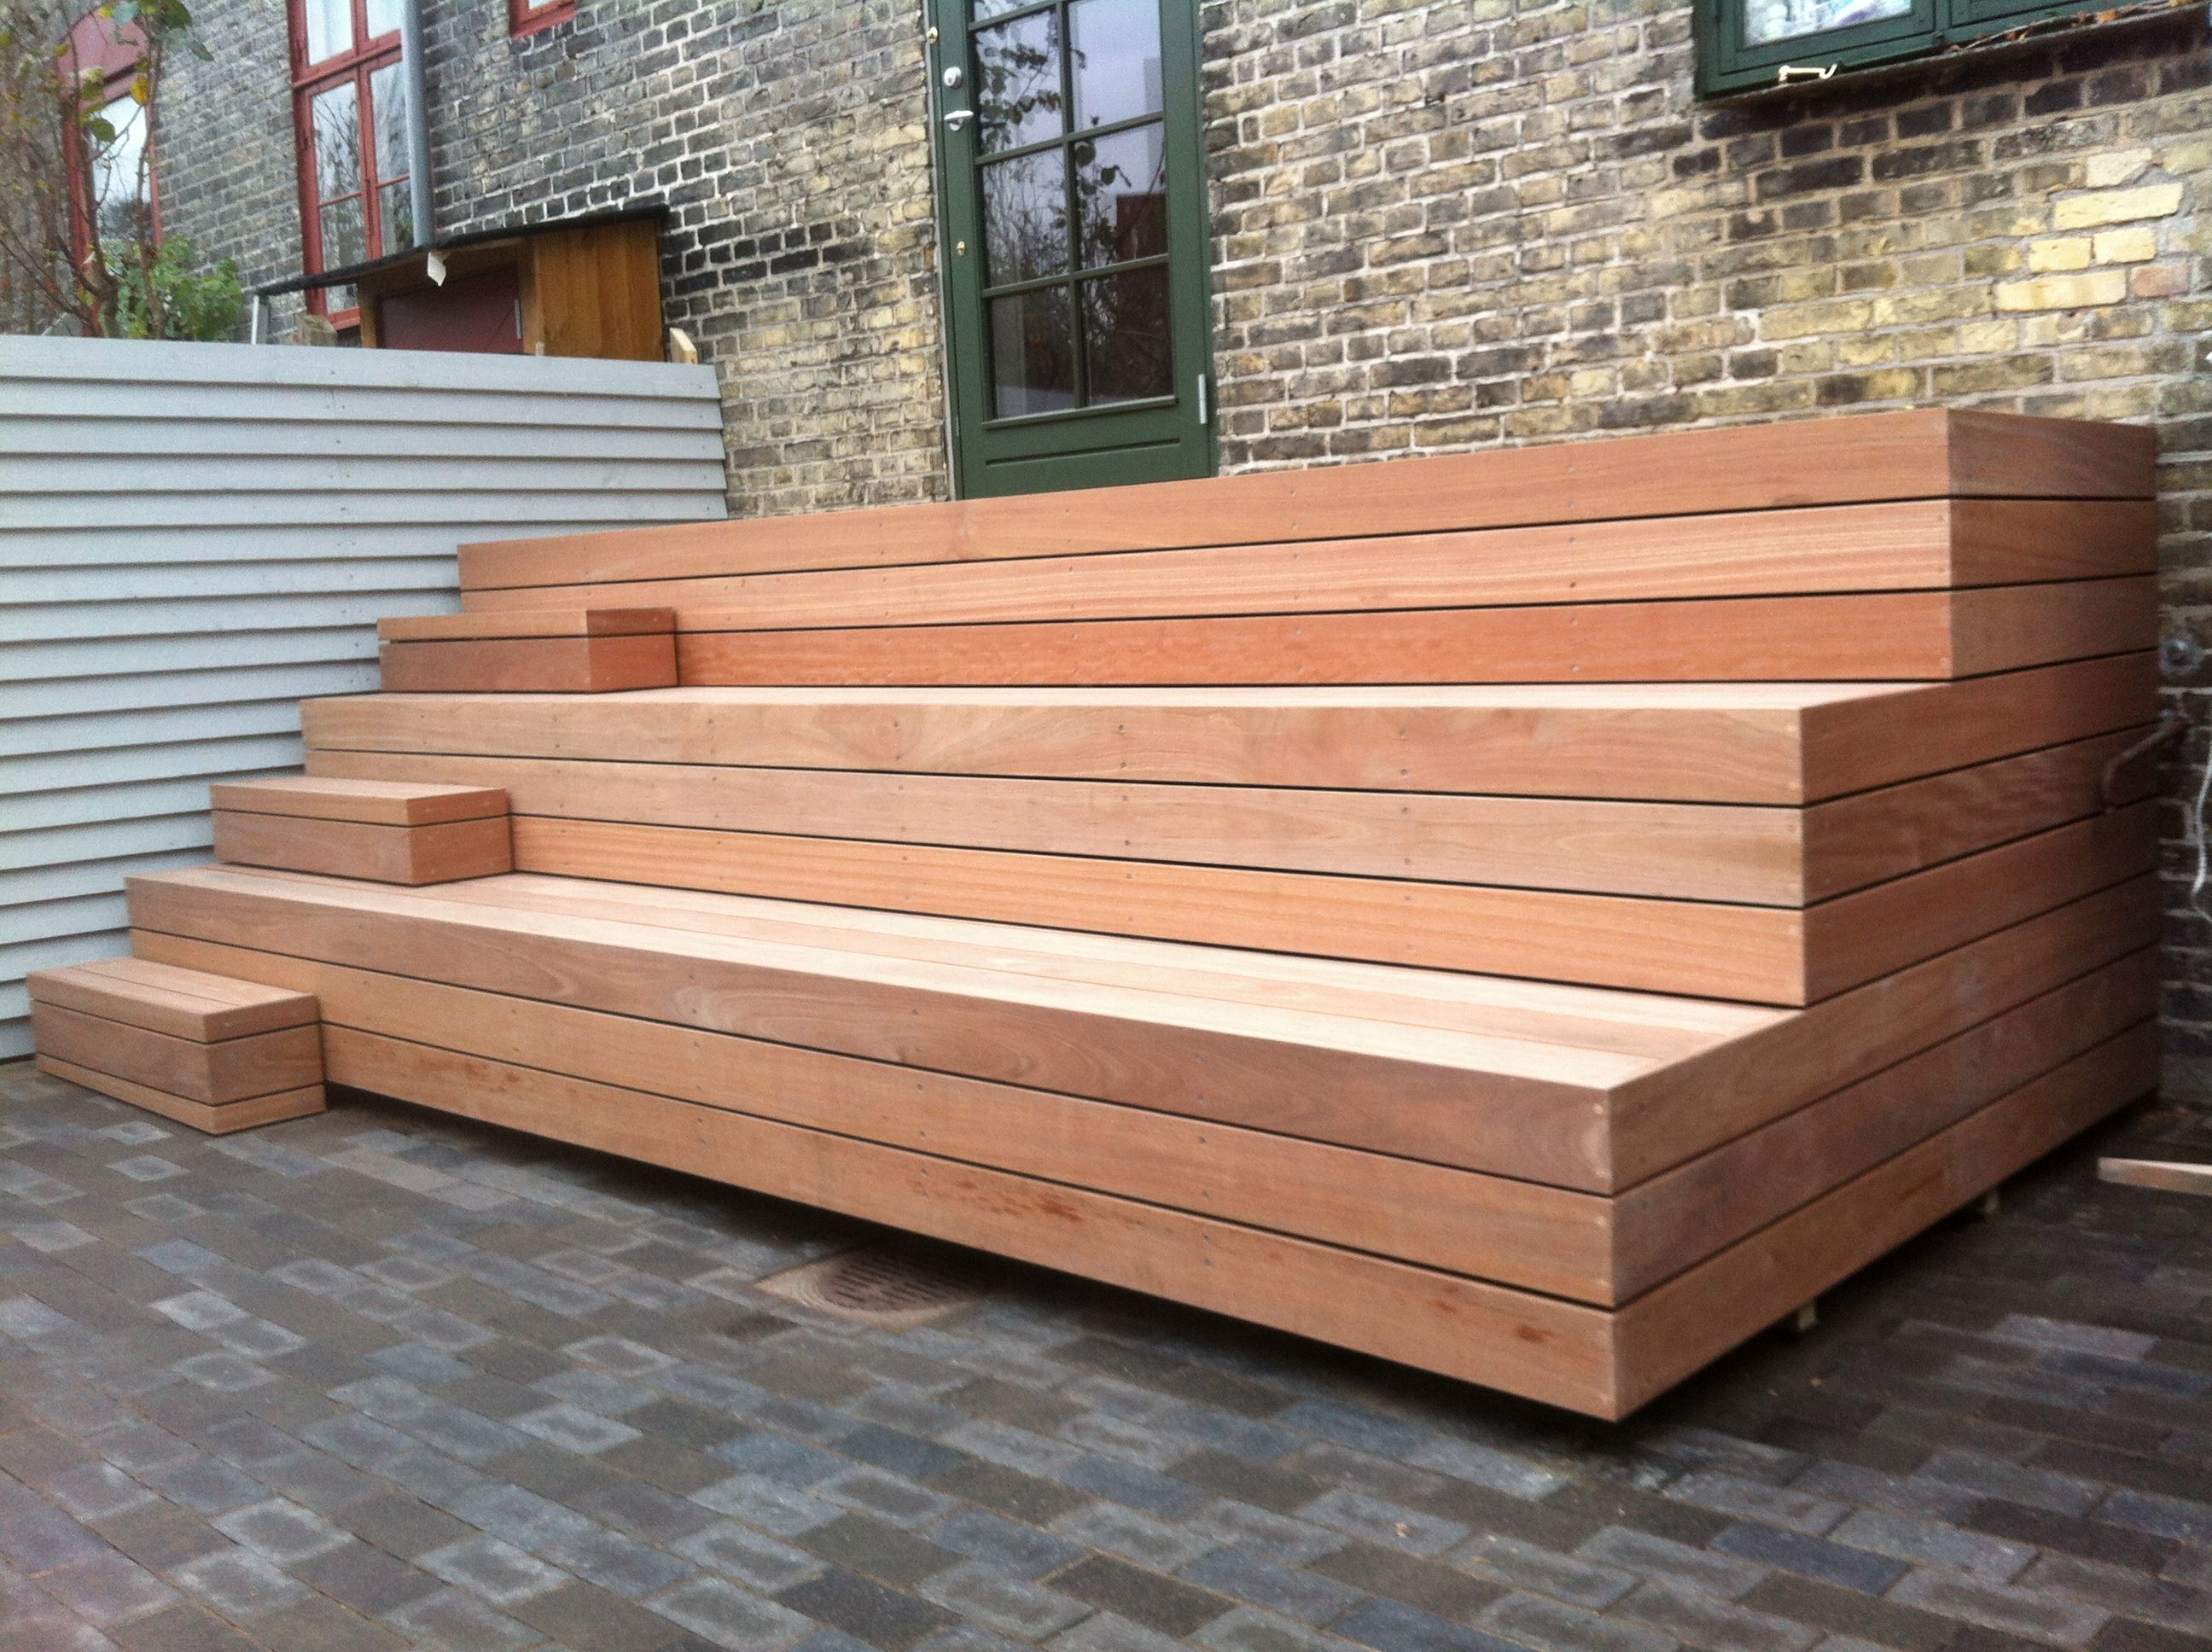 His is my favorite way to incorporate steps into the bench idea ...